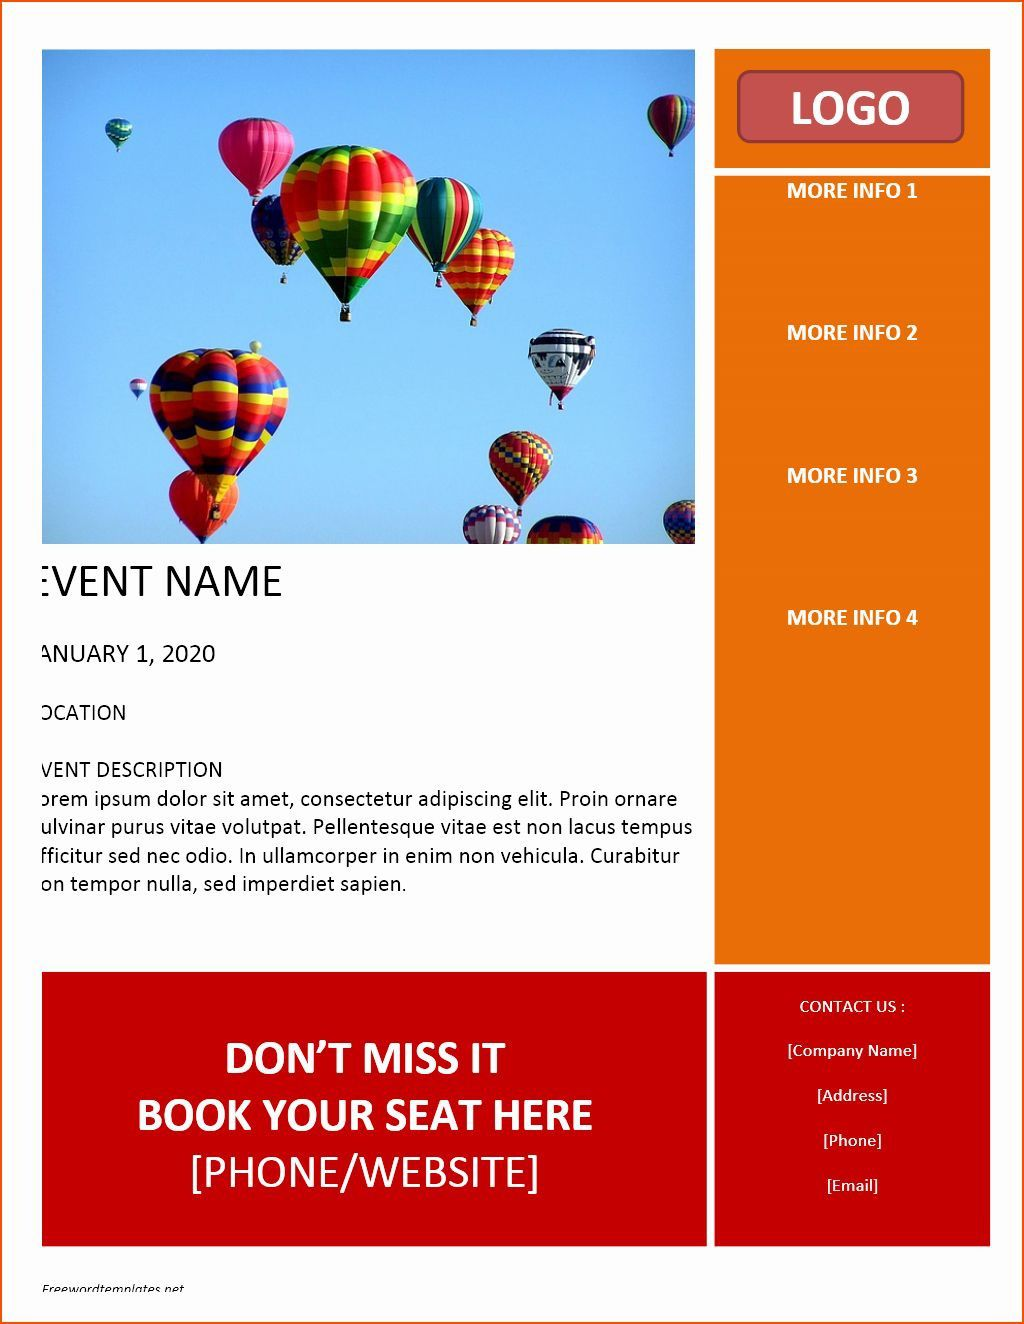 004 Impressive Free Flyer Template Word Image  Document Blank DownloadFull